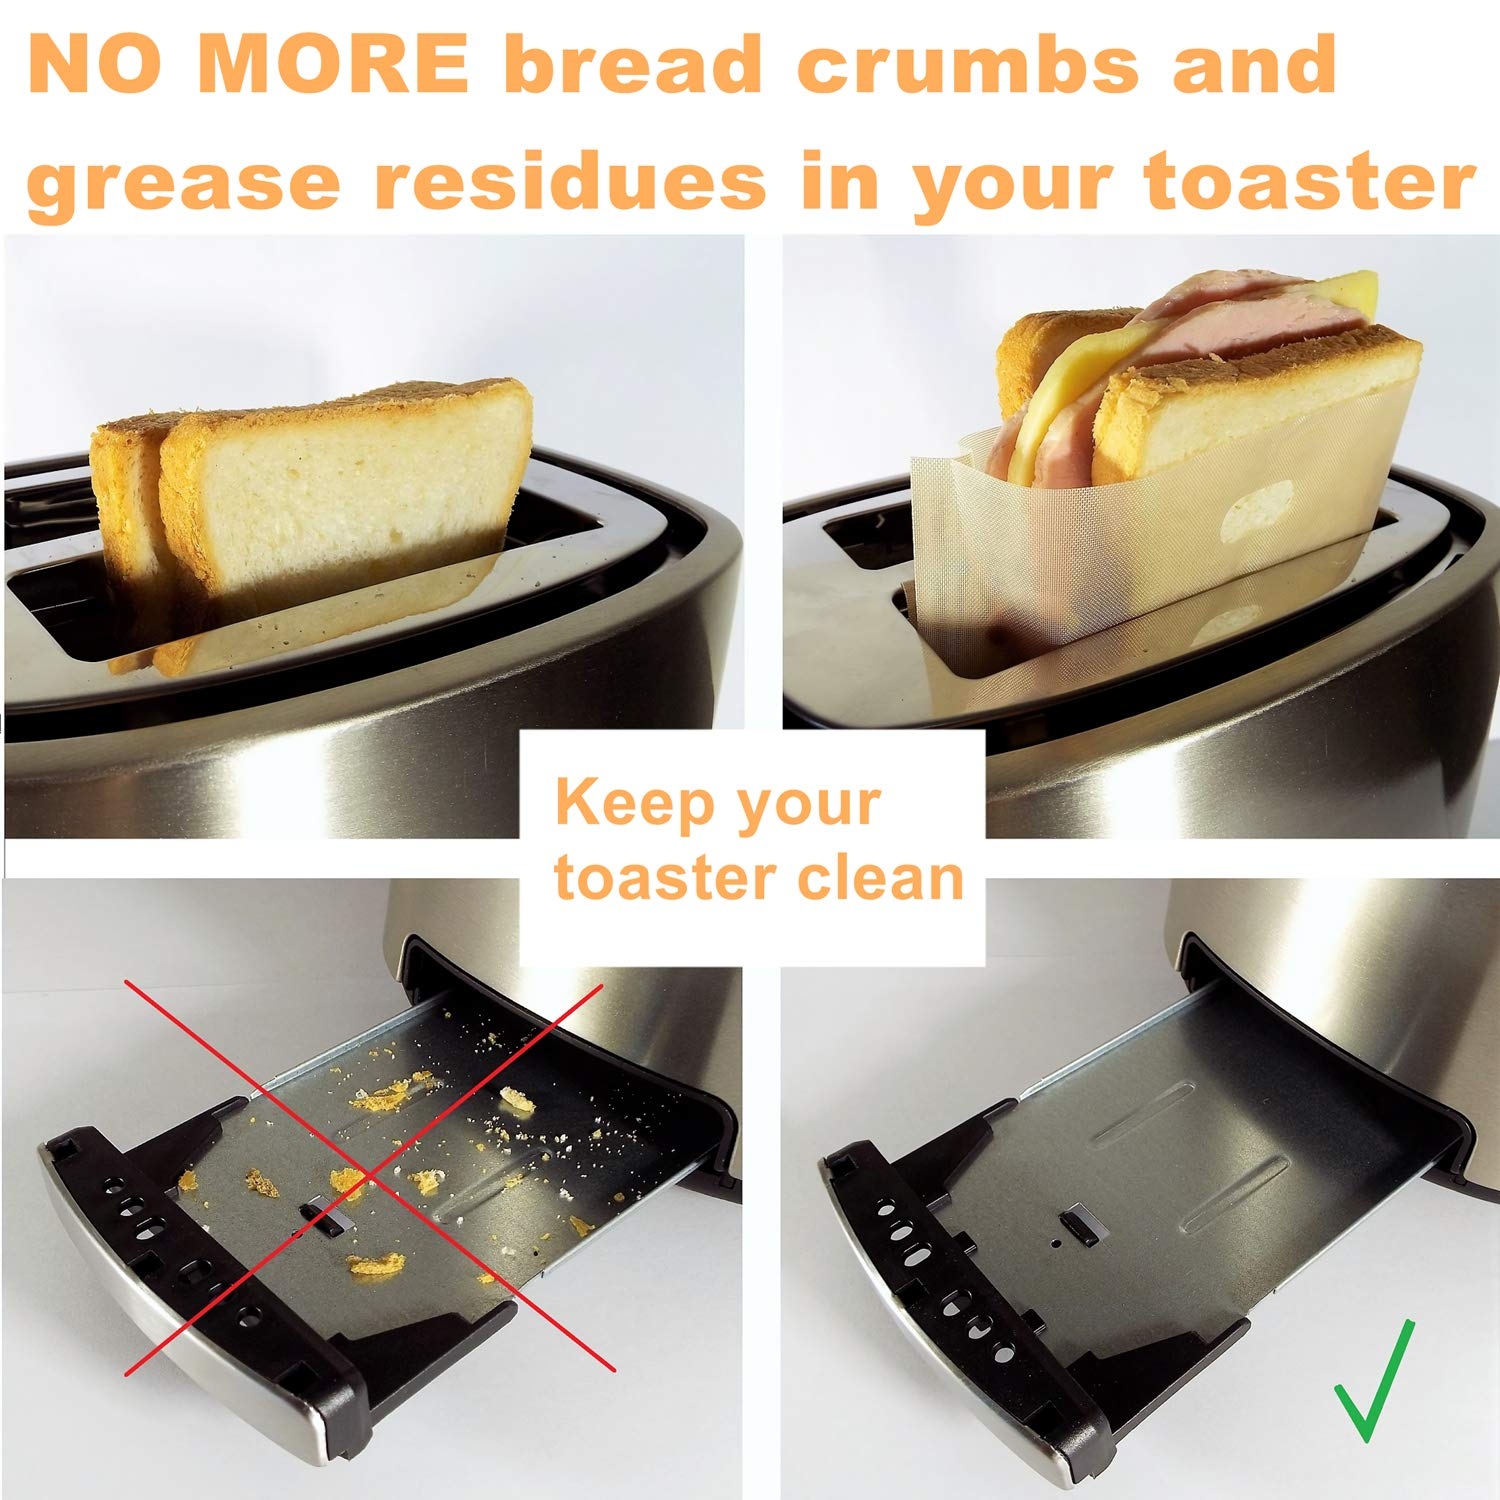 Non Stick Toaster Grilled Cheese Bags Reusable and Heat Resistant Easy to Clean, Gluten Free, FDA Approved, Perfect for Sandwiches, Chicken, Nuggets, Panini and Garlic Toasts - 10 Pcs by Famebird (Image #2)